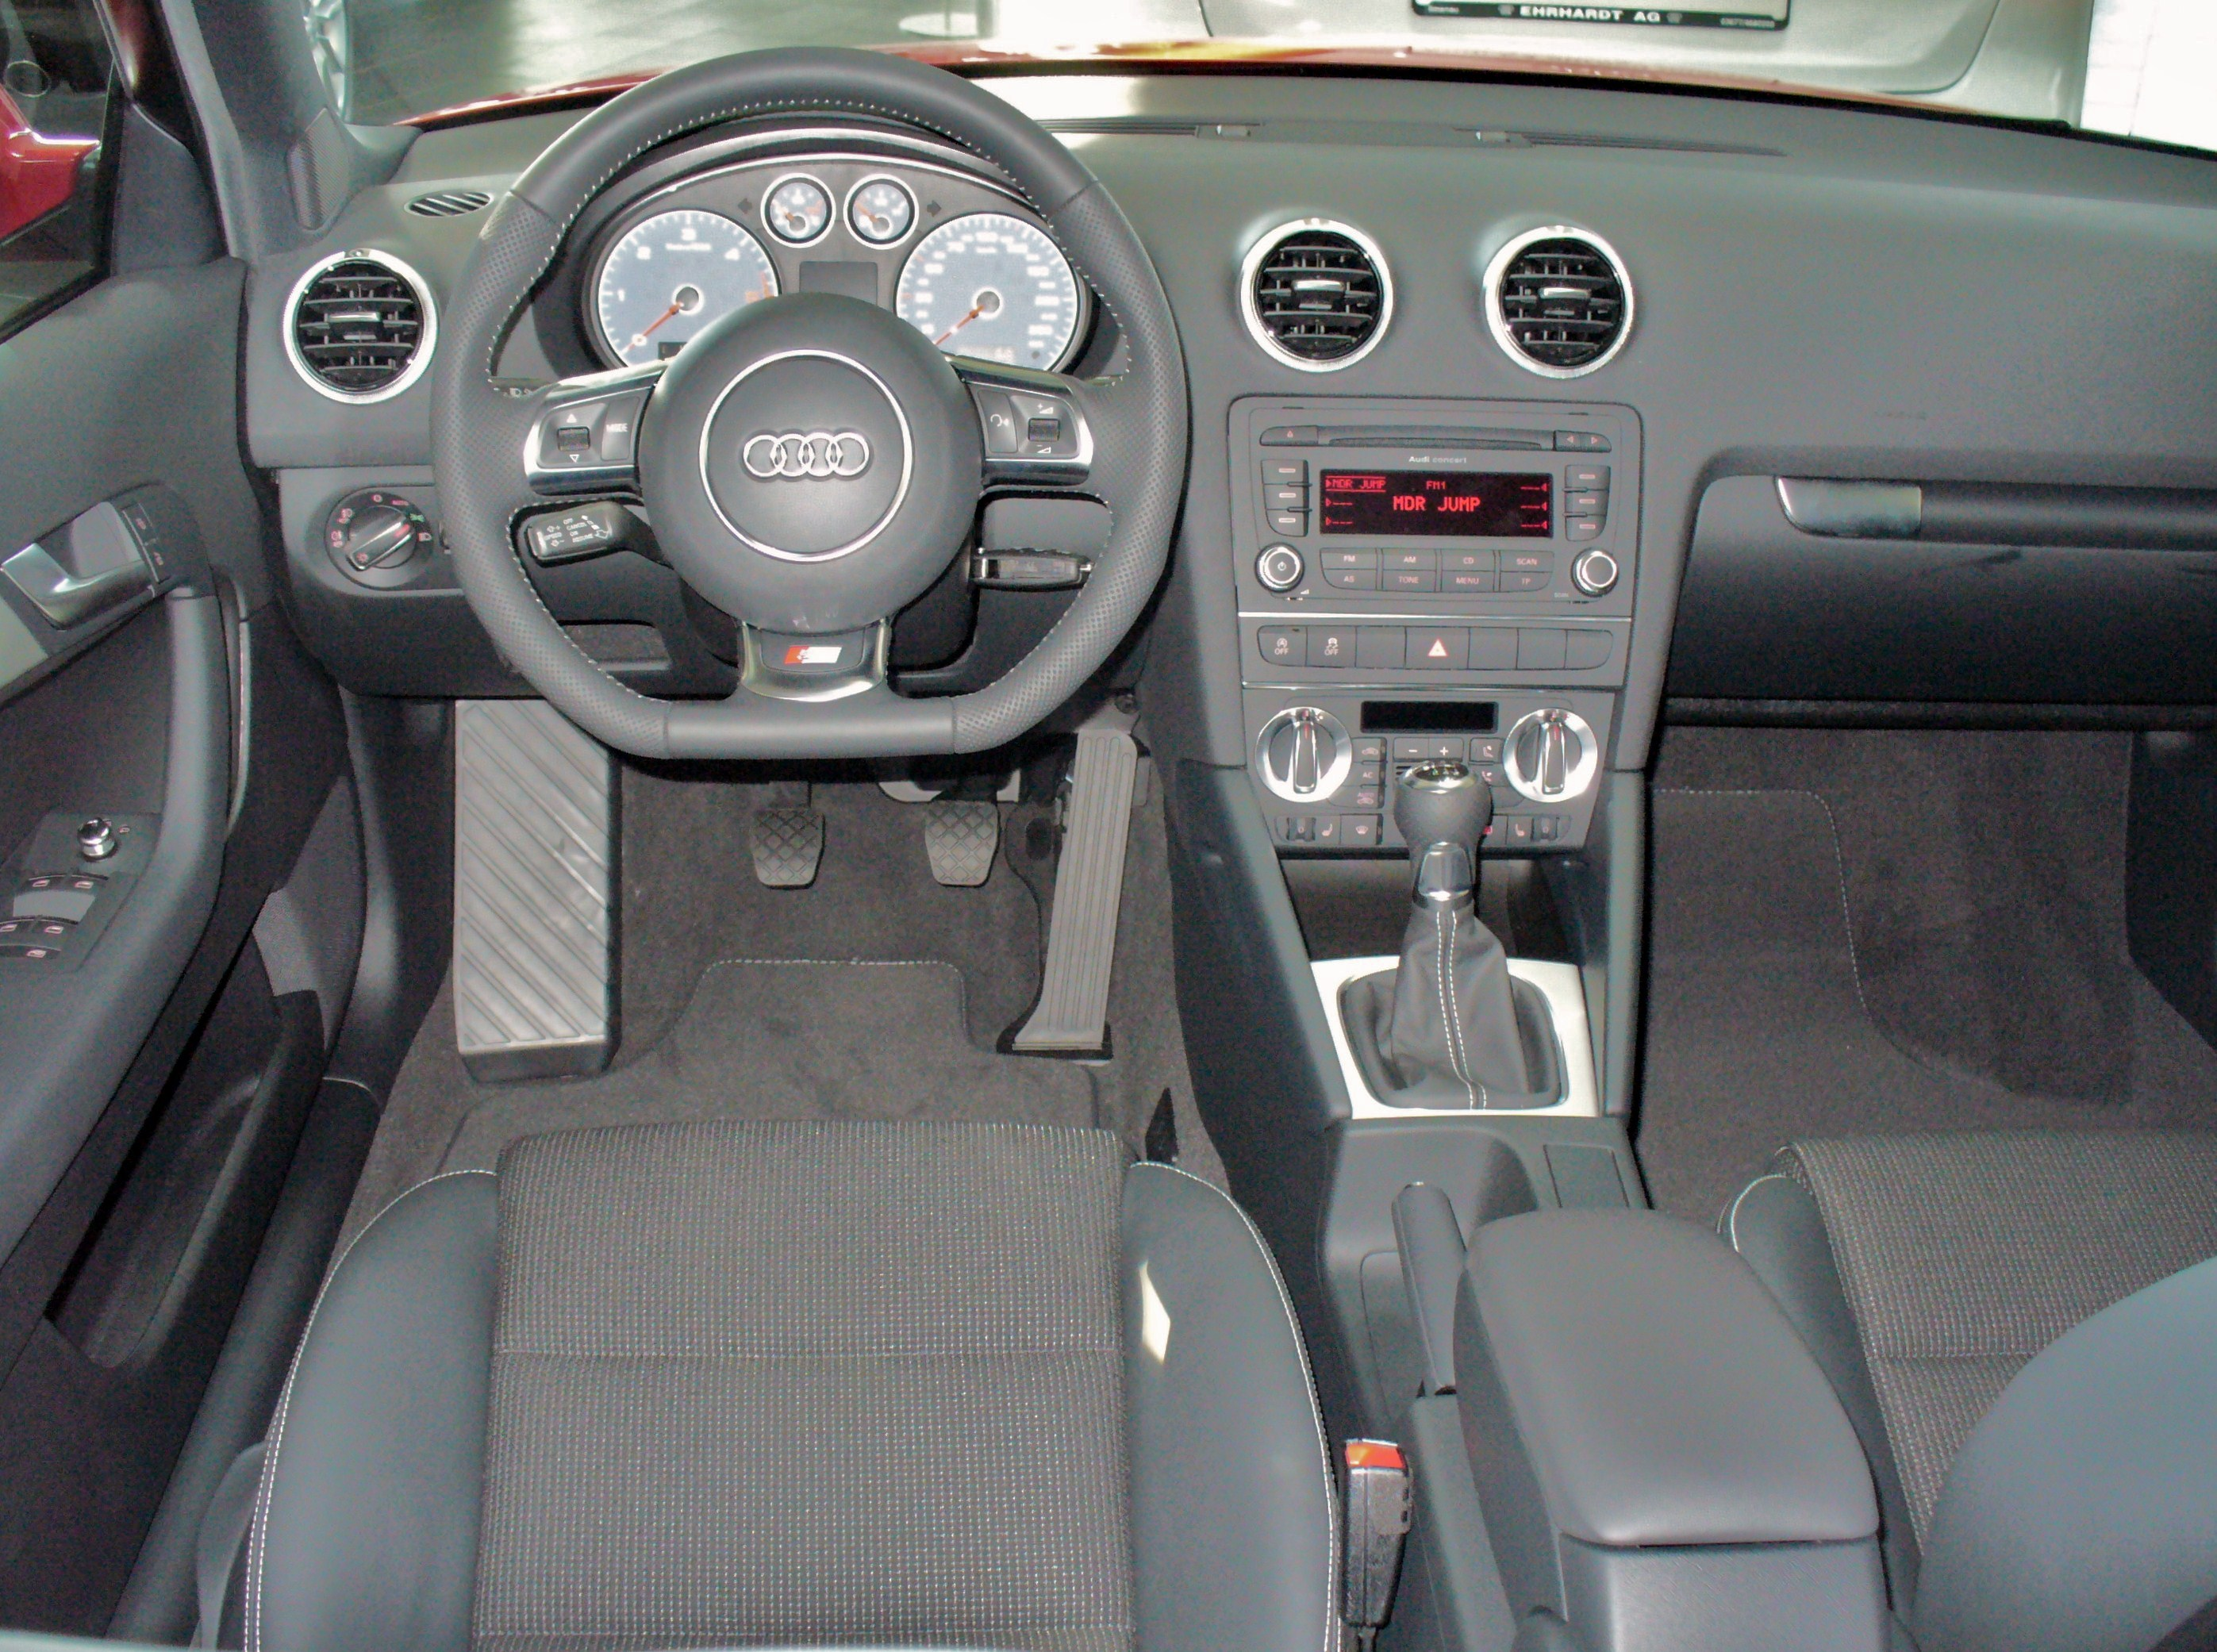 file audi a3 sportback s line 2 0 tdi quattro misanorot interieur jpg wikimedia commons. Black Bedroom Furniture Sets. Home Design Ideas